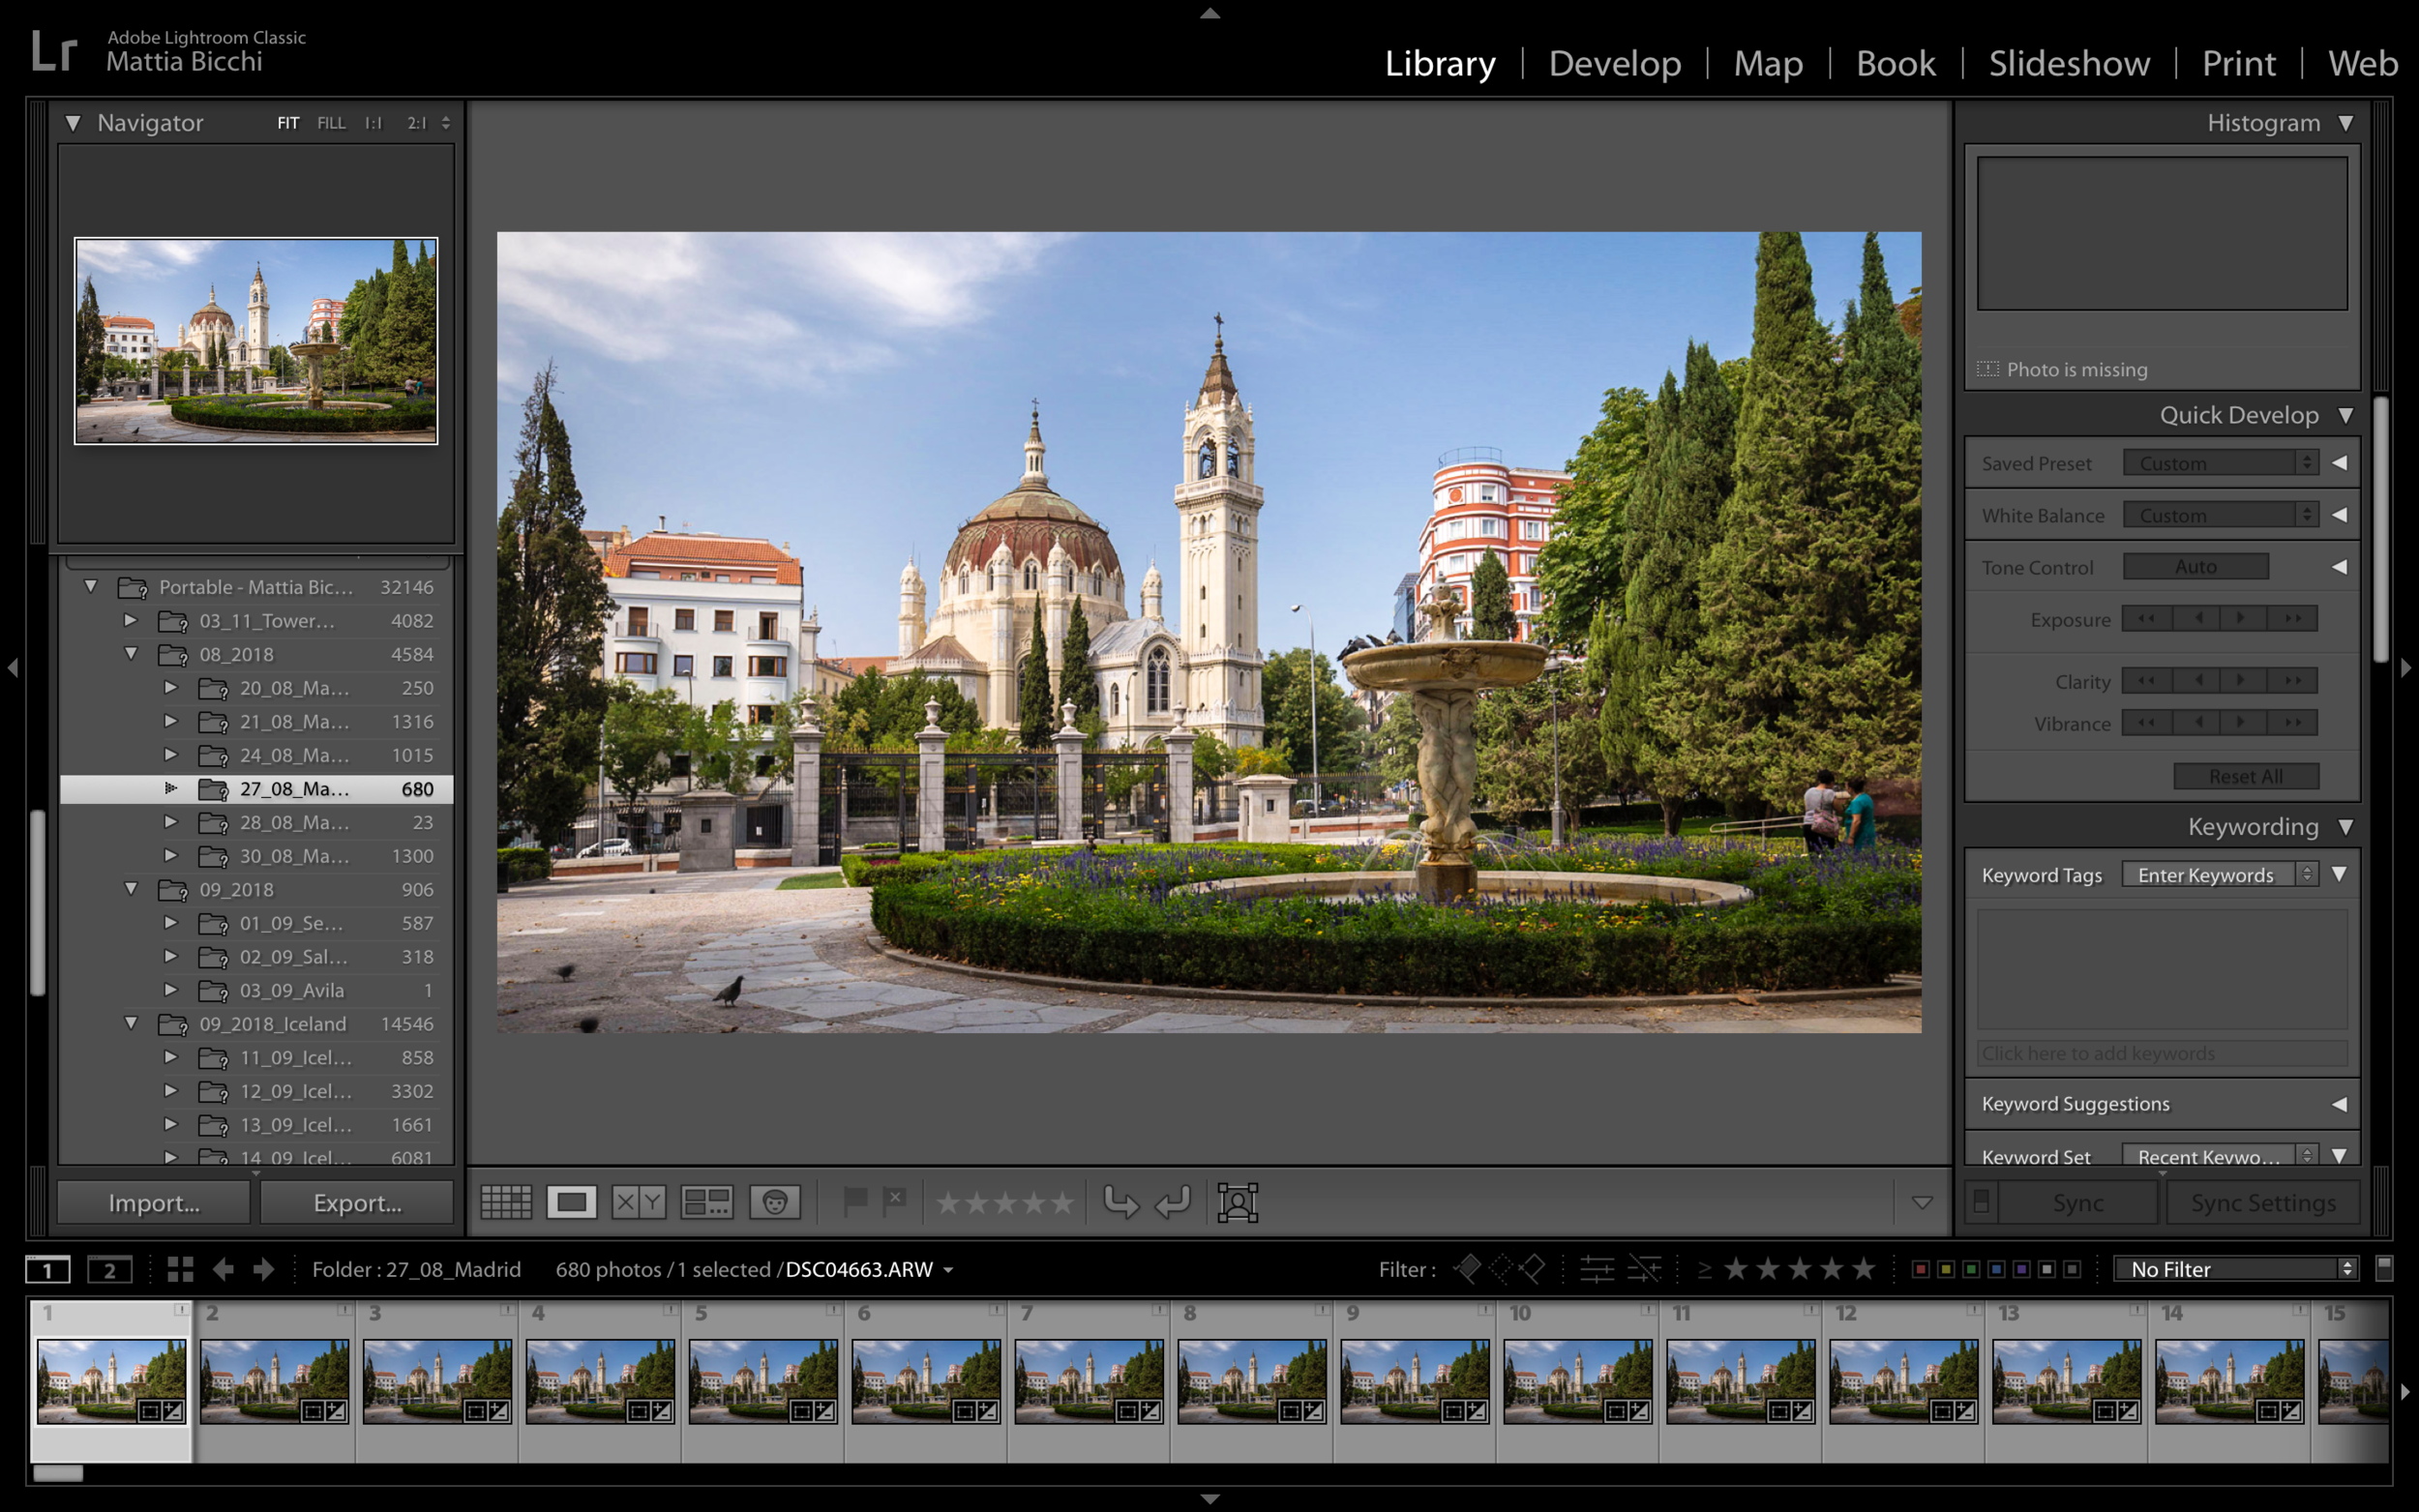 Timelapse/Hyperlapse Post Production only - If you have a sequence that you shot or you only want to learn how to edit a Timelapse, an Hyperlapse or a Holy Grail Timelapse, (Day to night - Night to Day) this workshop is for you, we will meet somewhere in the city, and while enjoying a cup of coffee, I will teach you all the post-production technique to create a beautiful Timelapse€100 - 2 hours